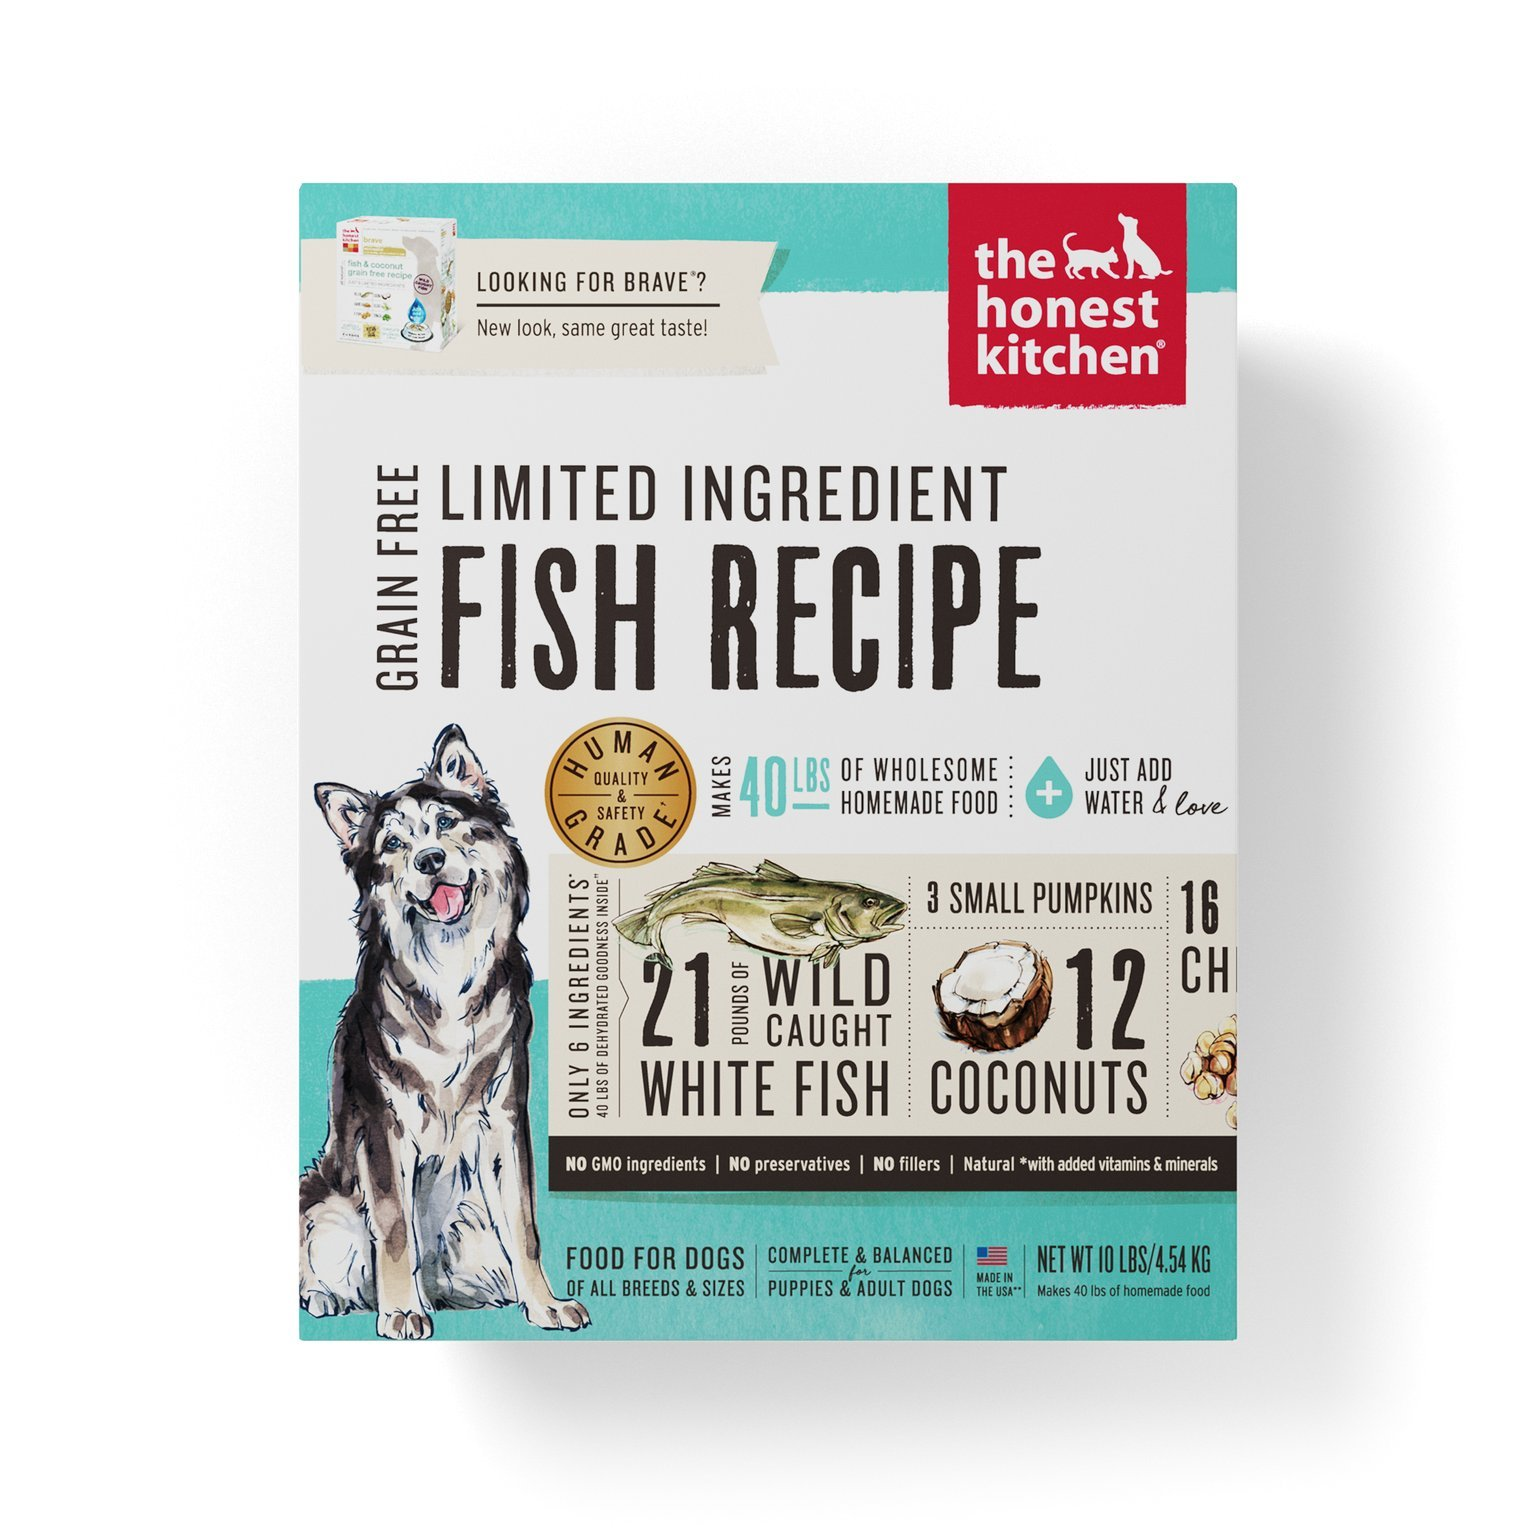 The Honest Kitchen Brave Grain Free Dog Food - Dehydrated Minimalist Limited Ingredient Dog Food, Fish & Coconut, 10 lbs (Makes 40 lbs)